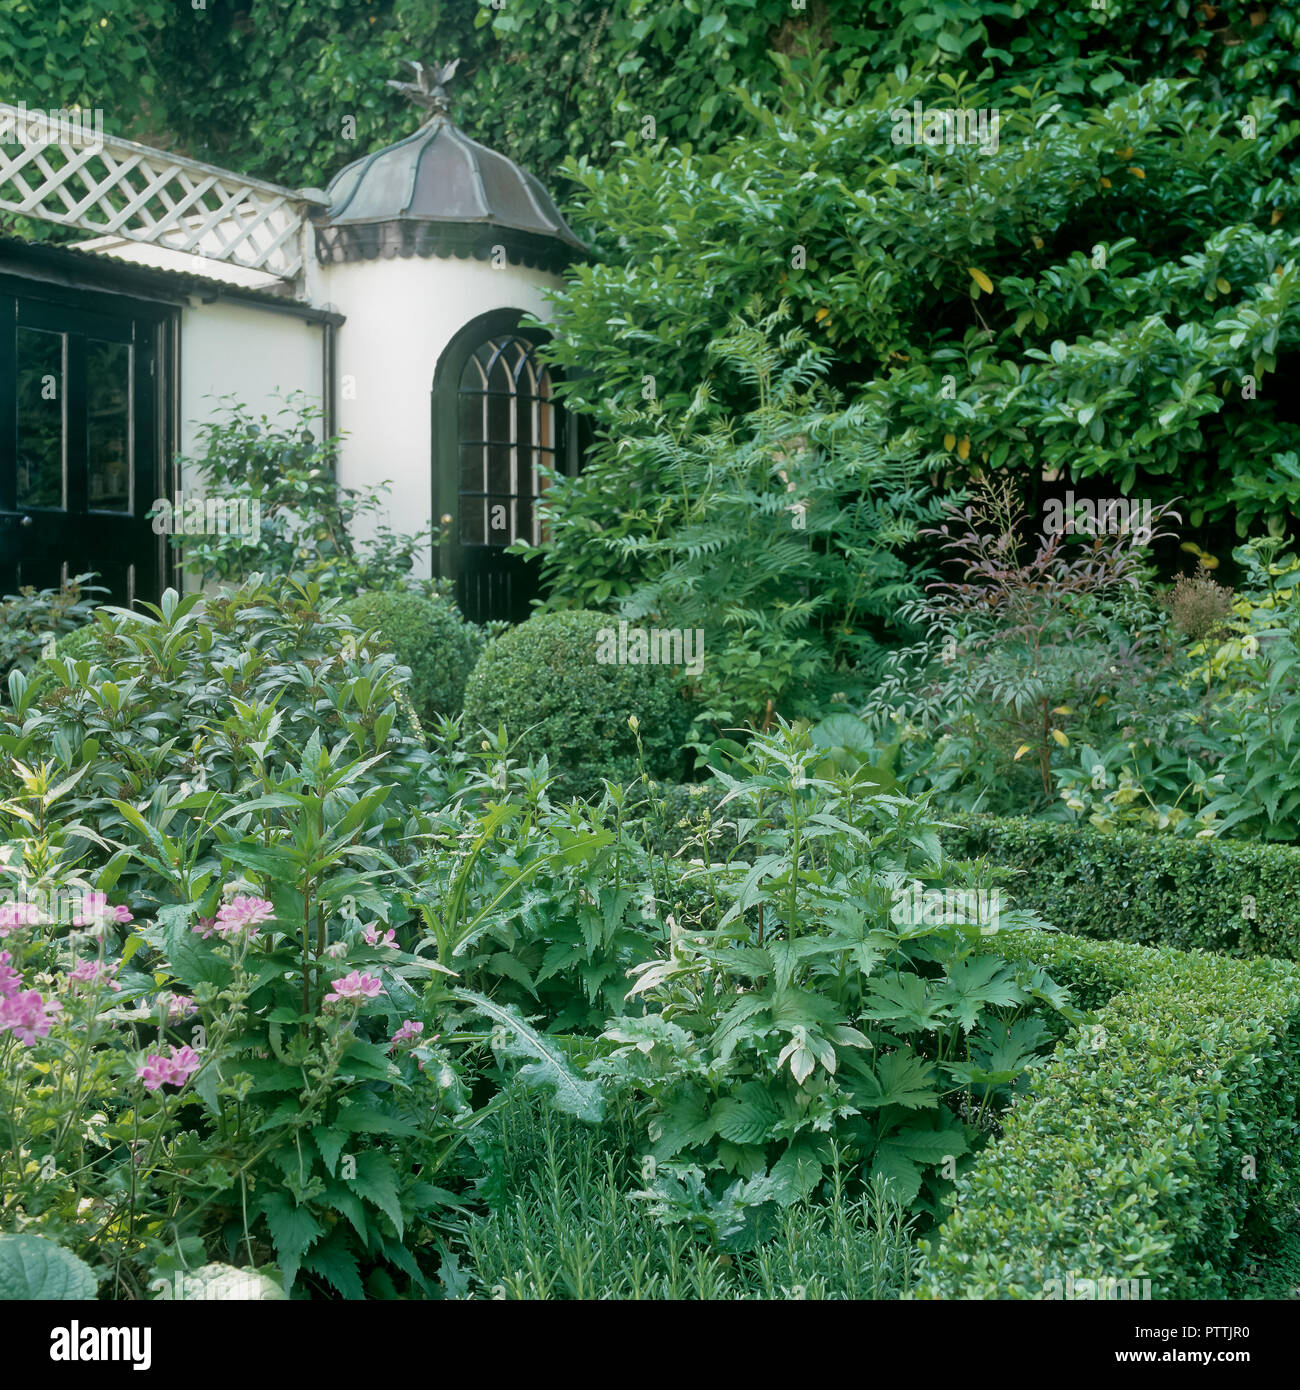 Pink flowering plants and clipped box with Victorian summerhouse in Kensington Garden - Stock Image